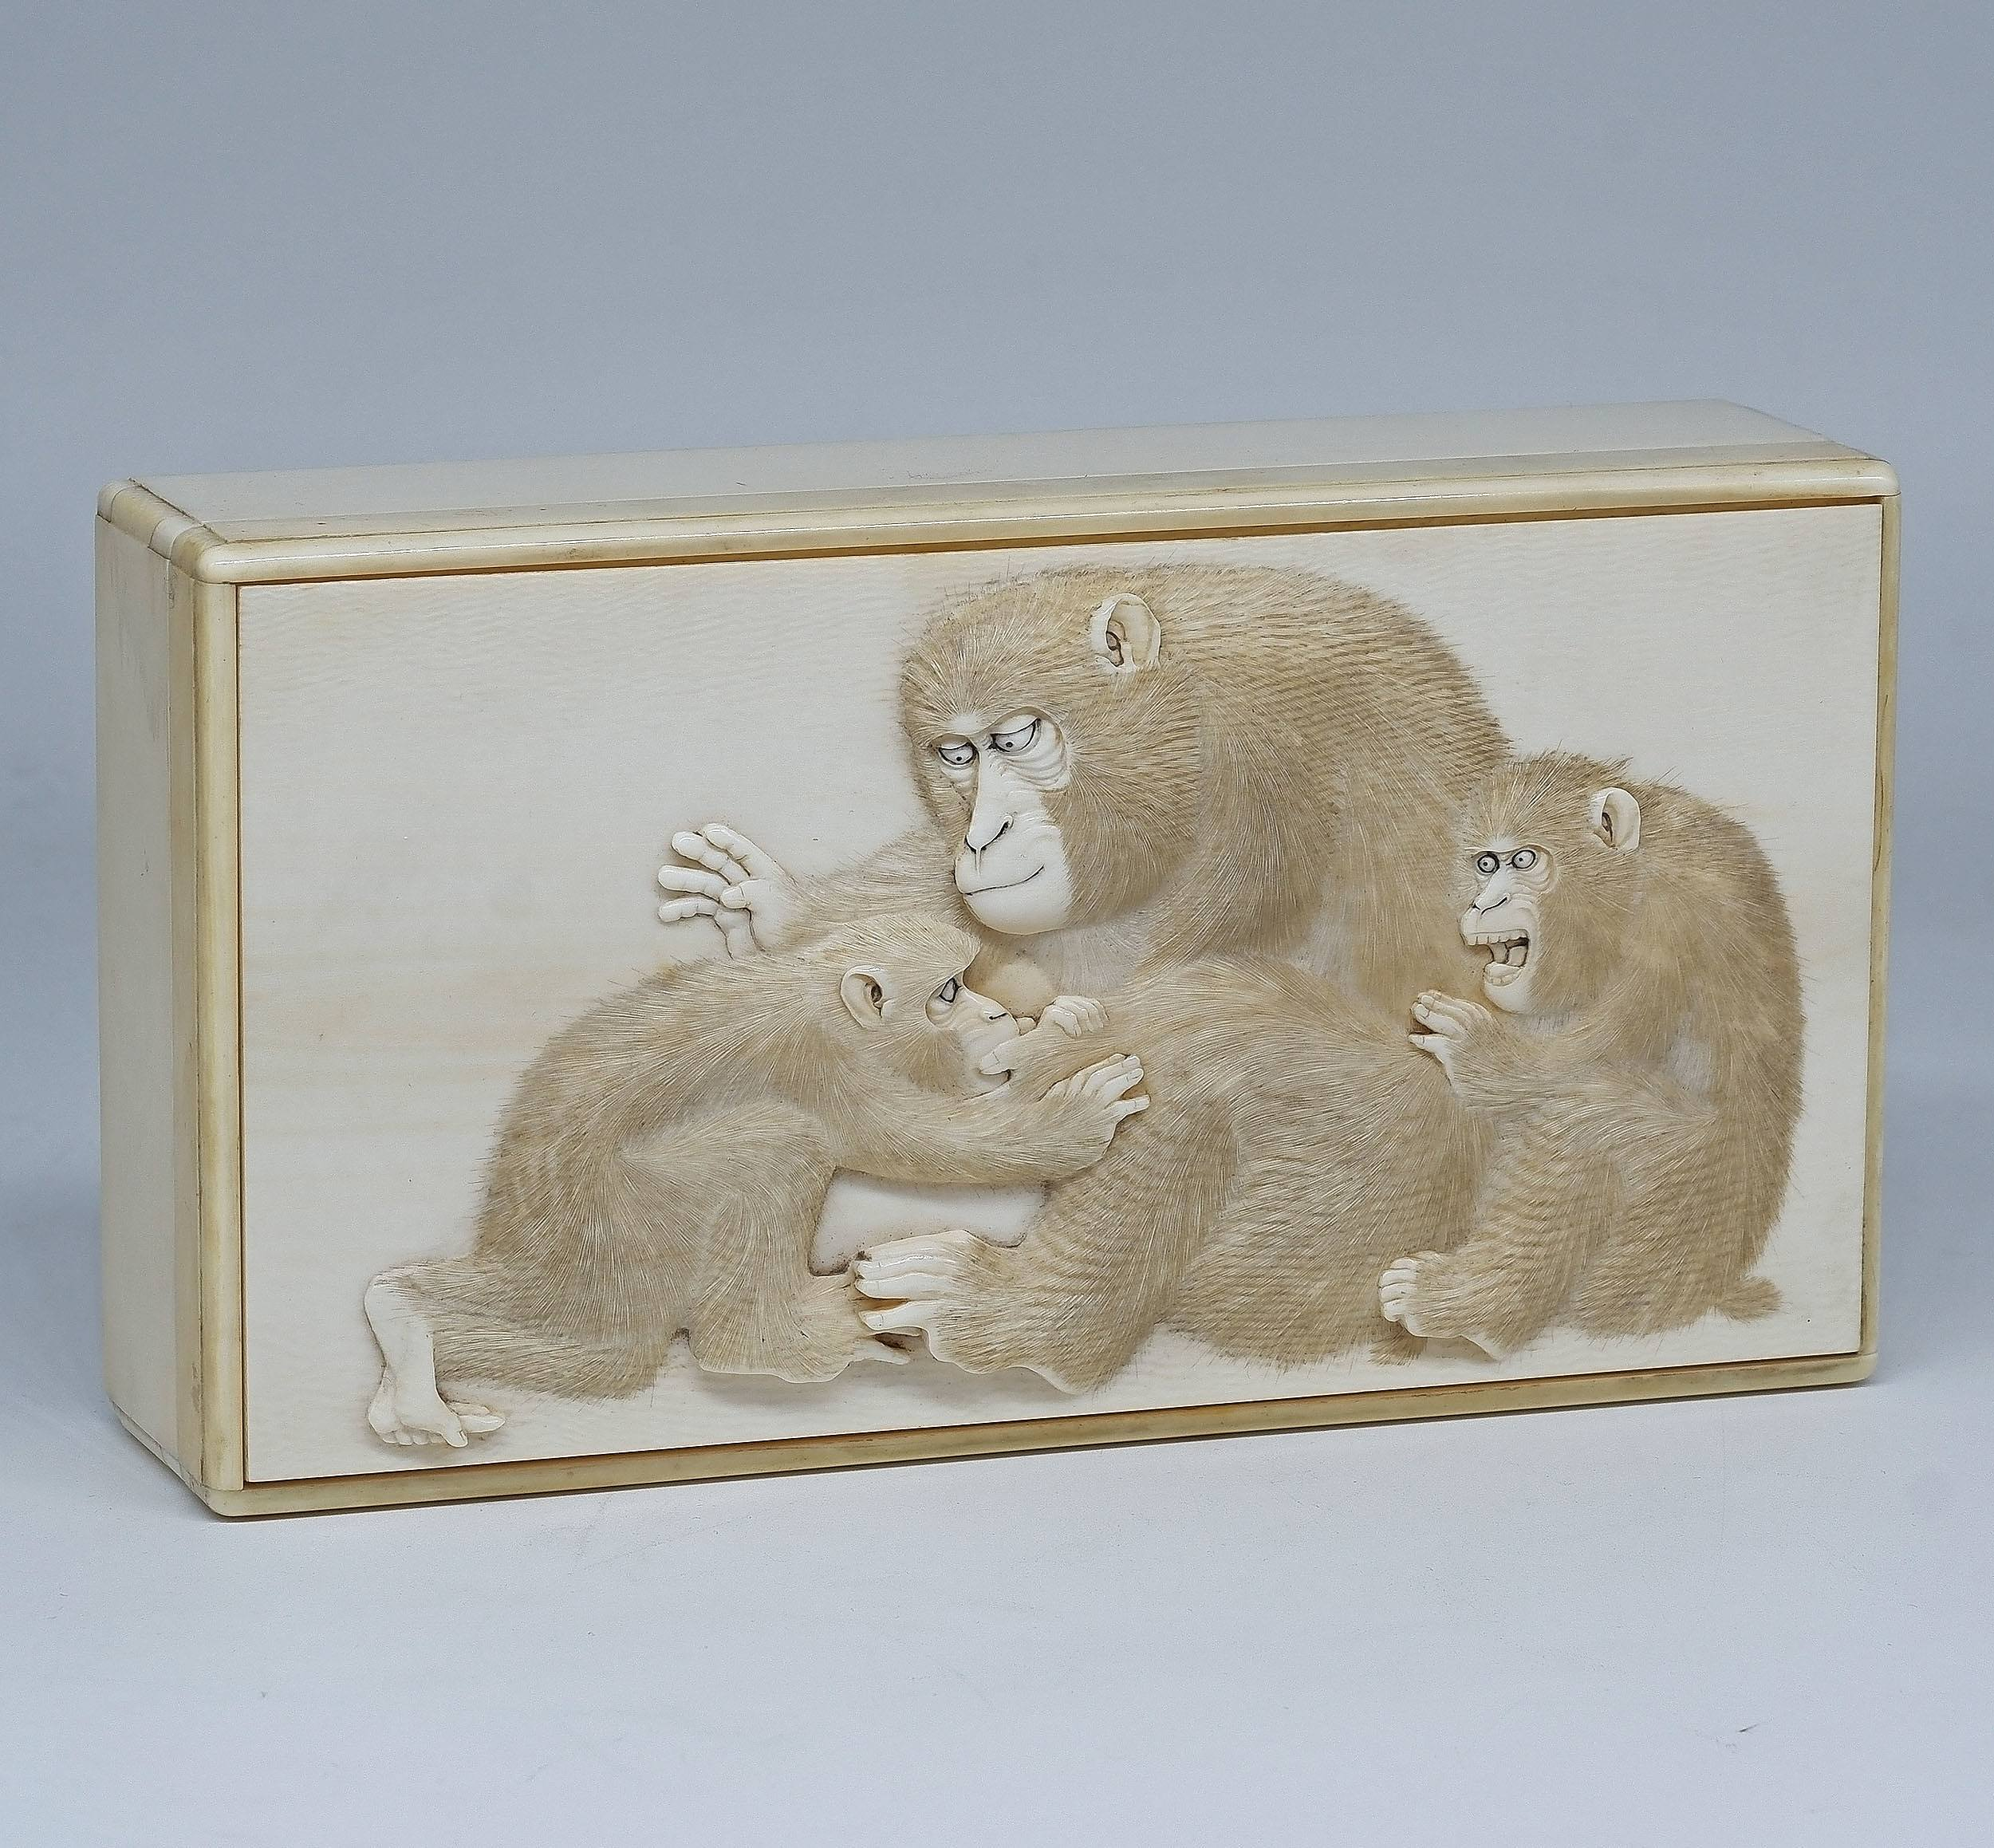 'Superb Japanese Elephant Ivory Box Finely Relief Carved with Monkeys, Meiji Period 1868-1912'